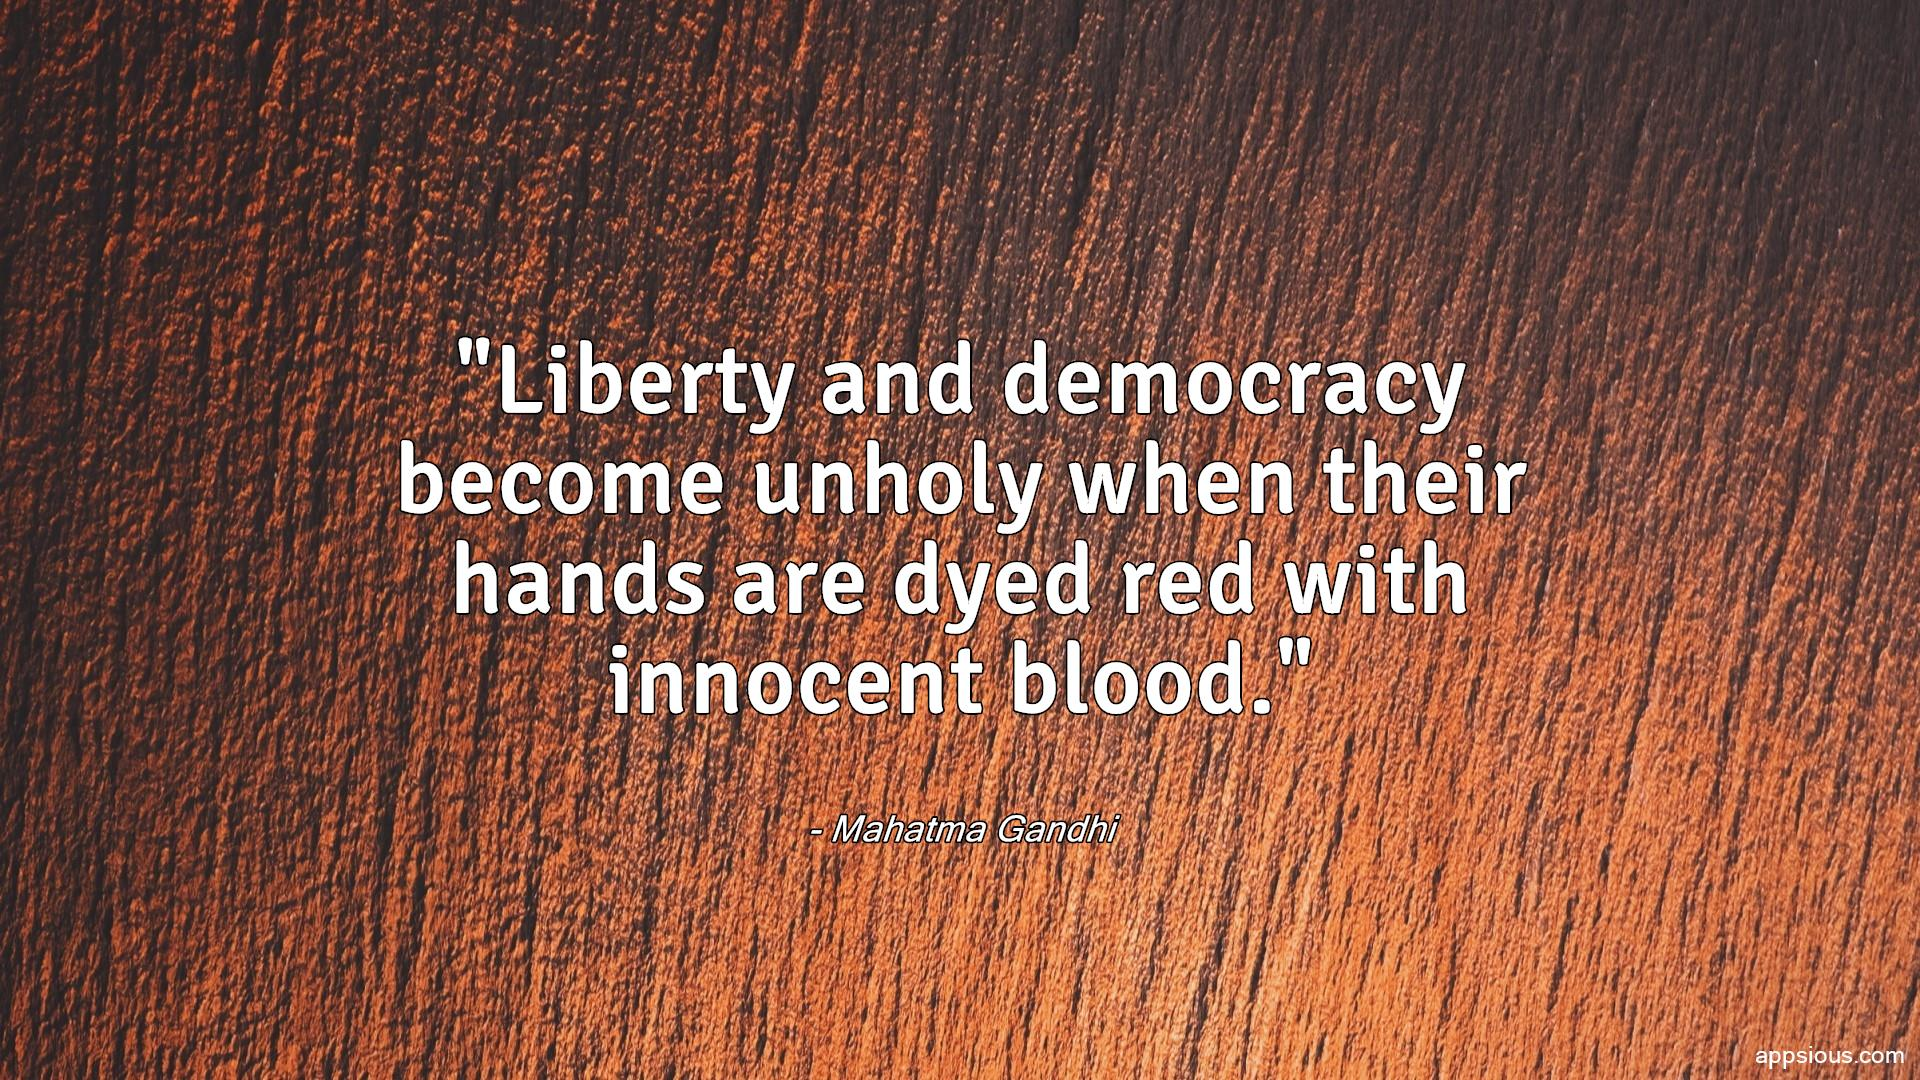 Liberty and democracy become unholy when their hands are dyed red with innocent blood.